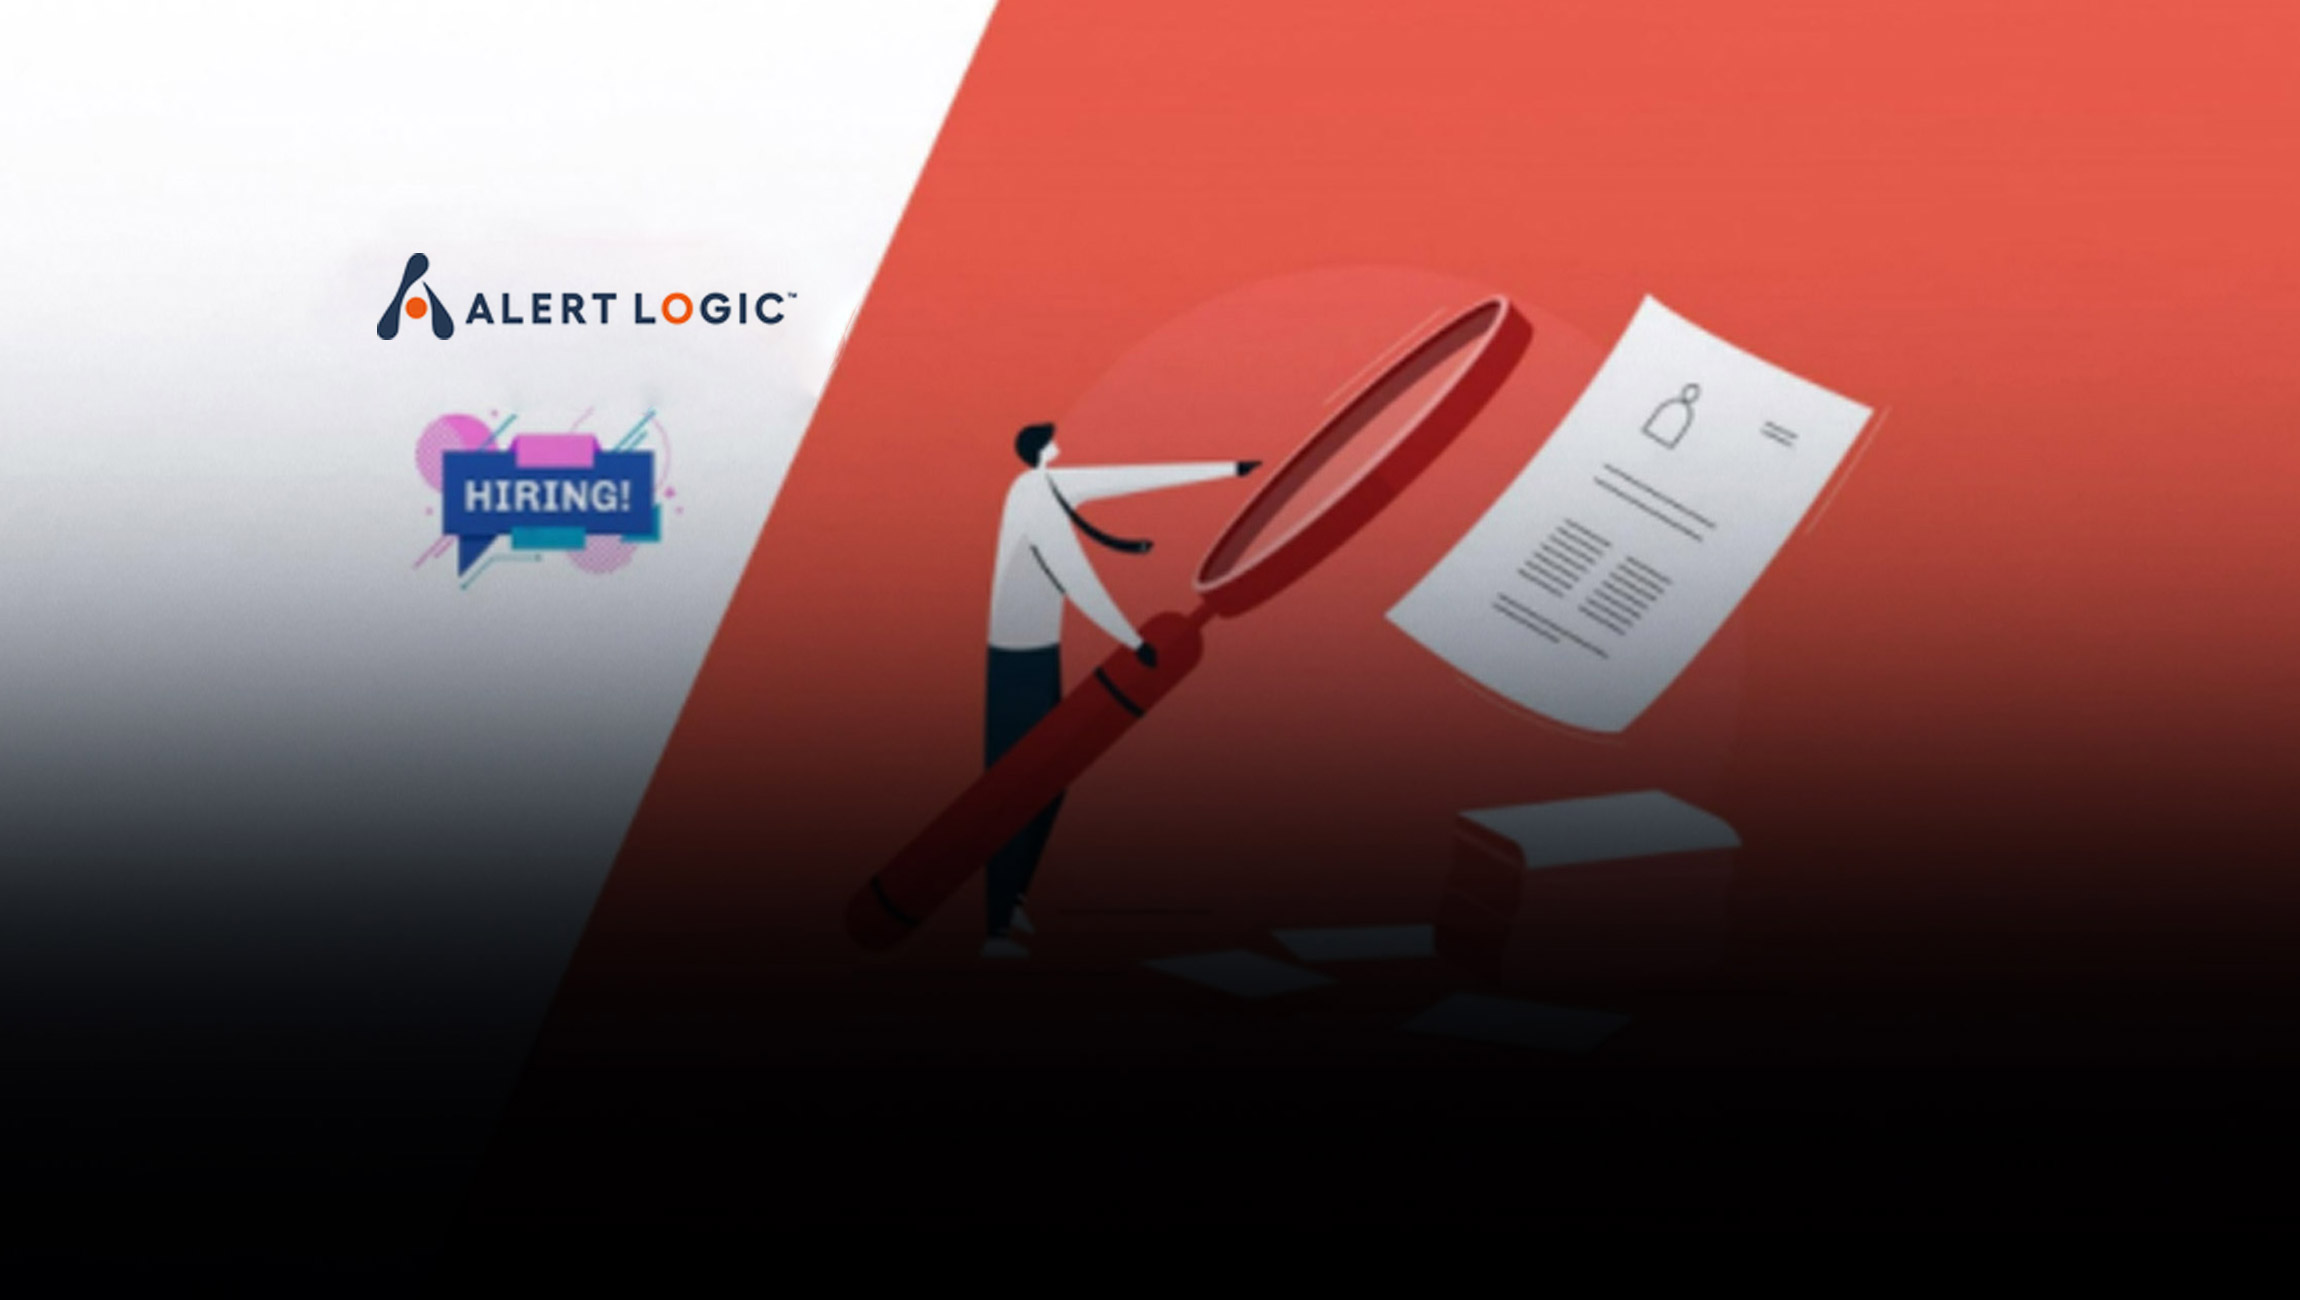 Alert Logic Appoints John Post as Chief Executive Officer